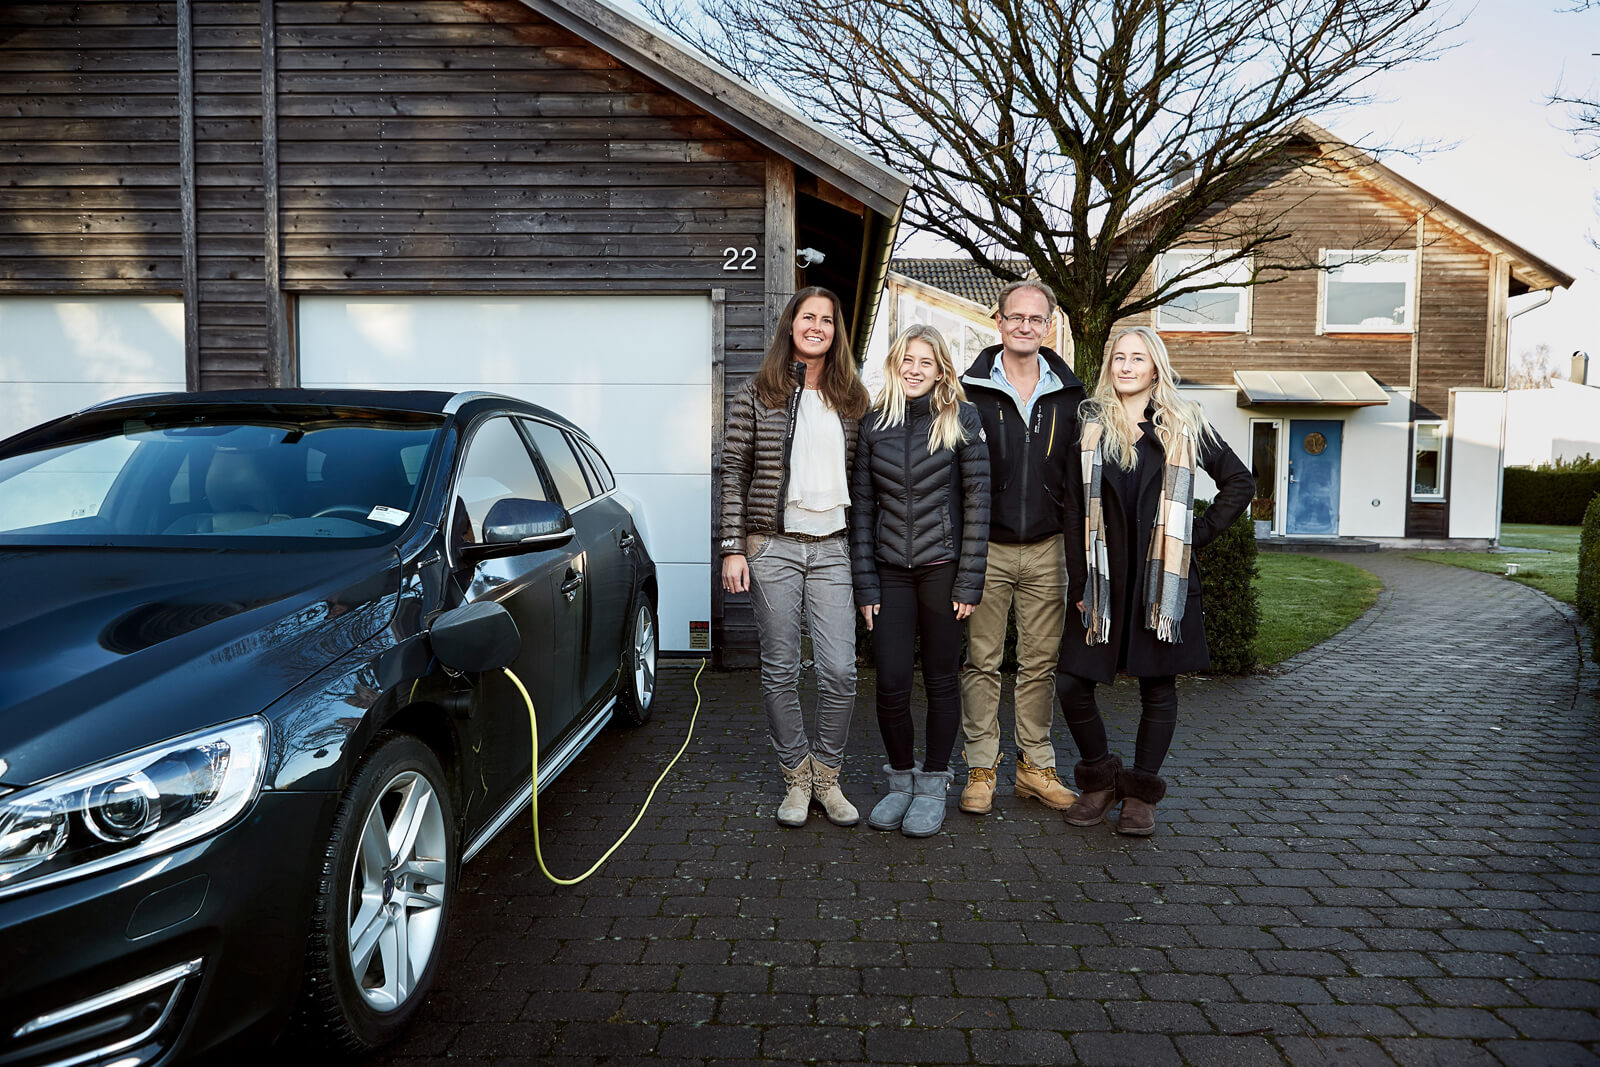 Volvo self driving car being tested on real family